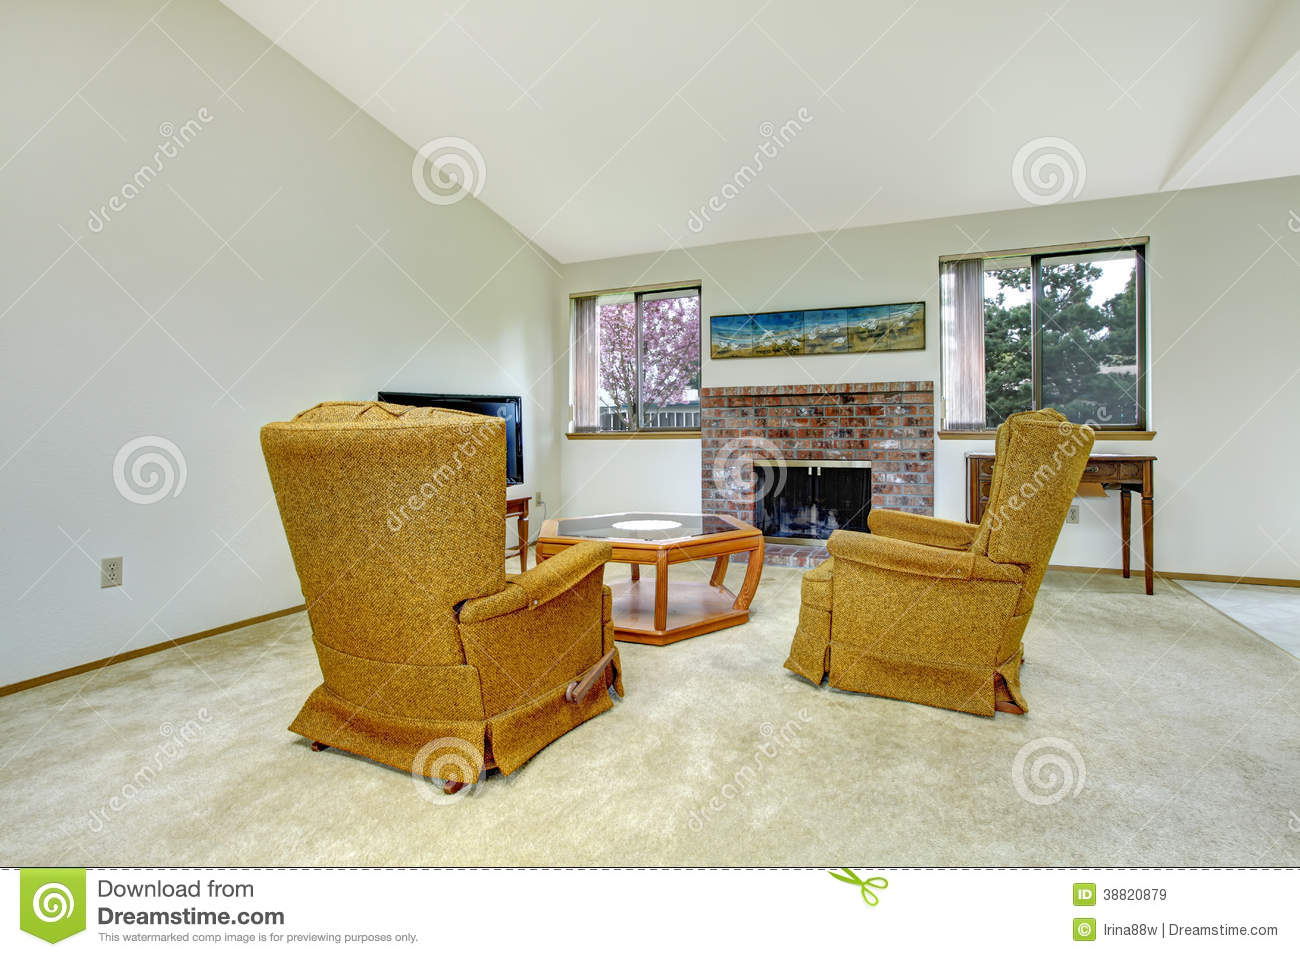 Living Room With Fireplace And Antique Chairs Stock Photo Image 38820879